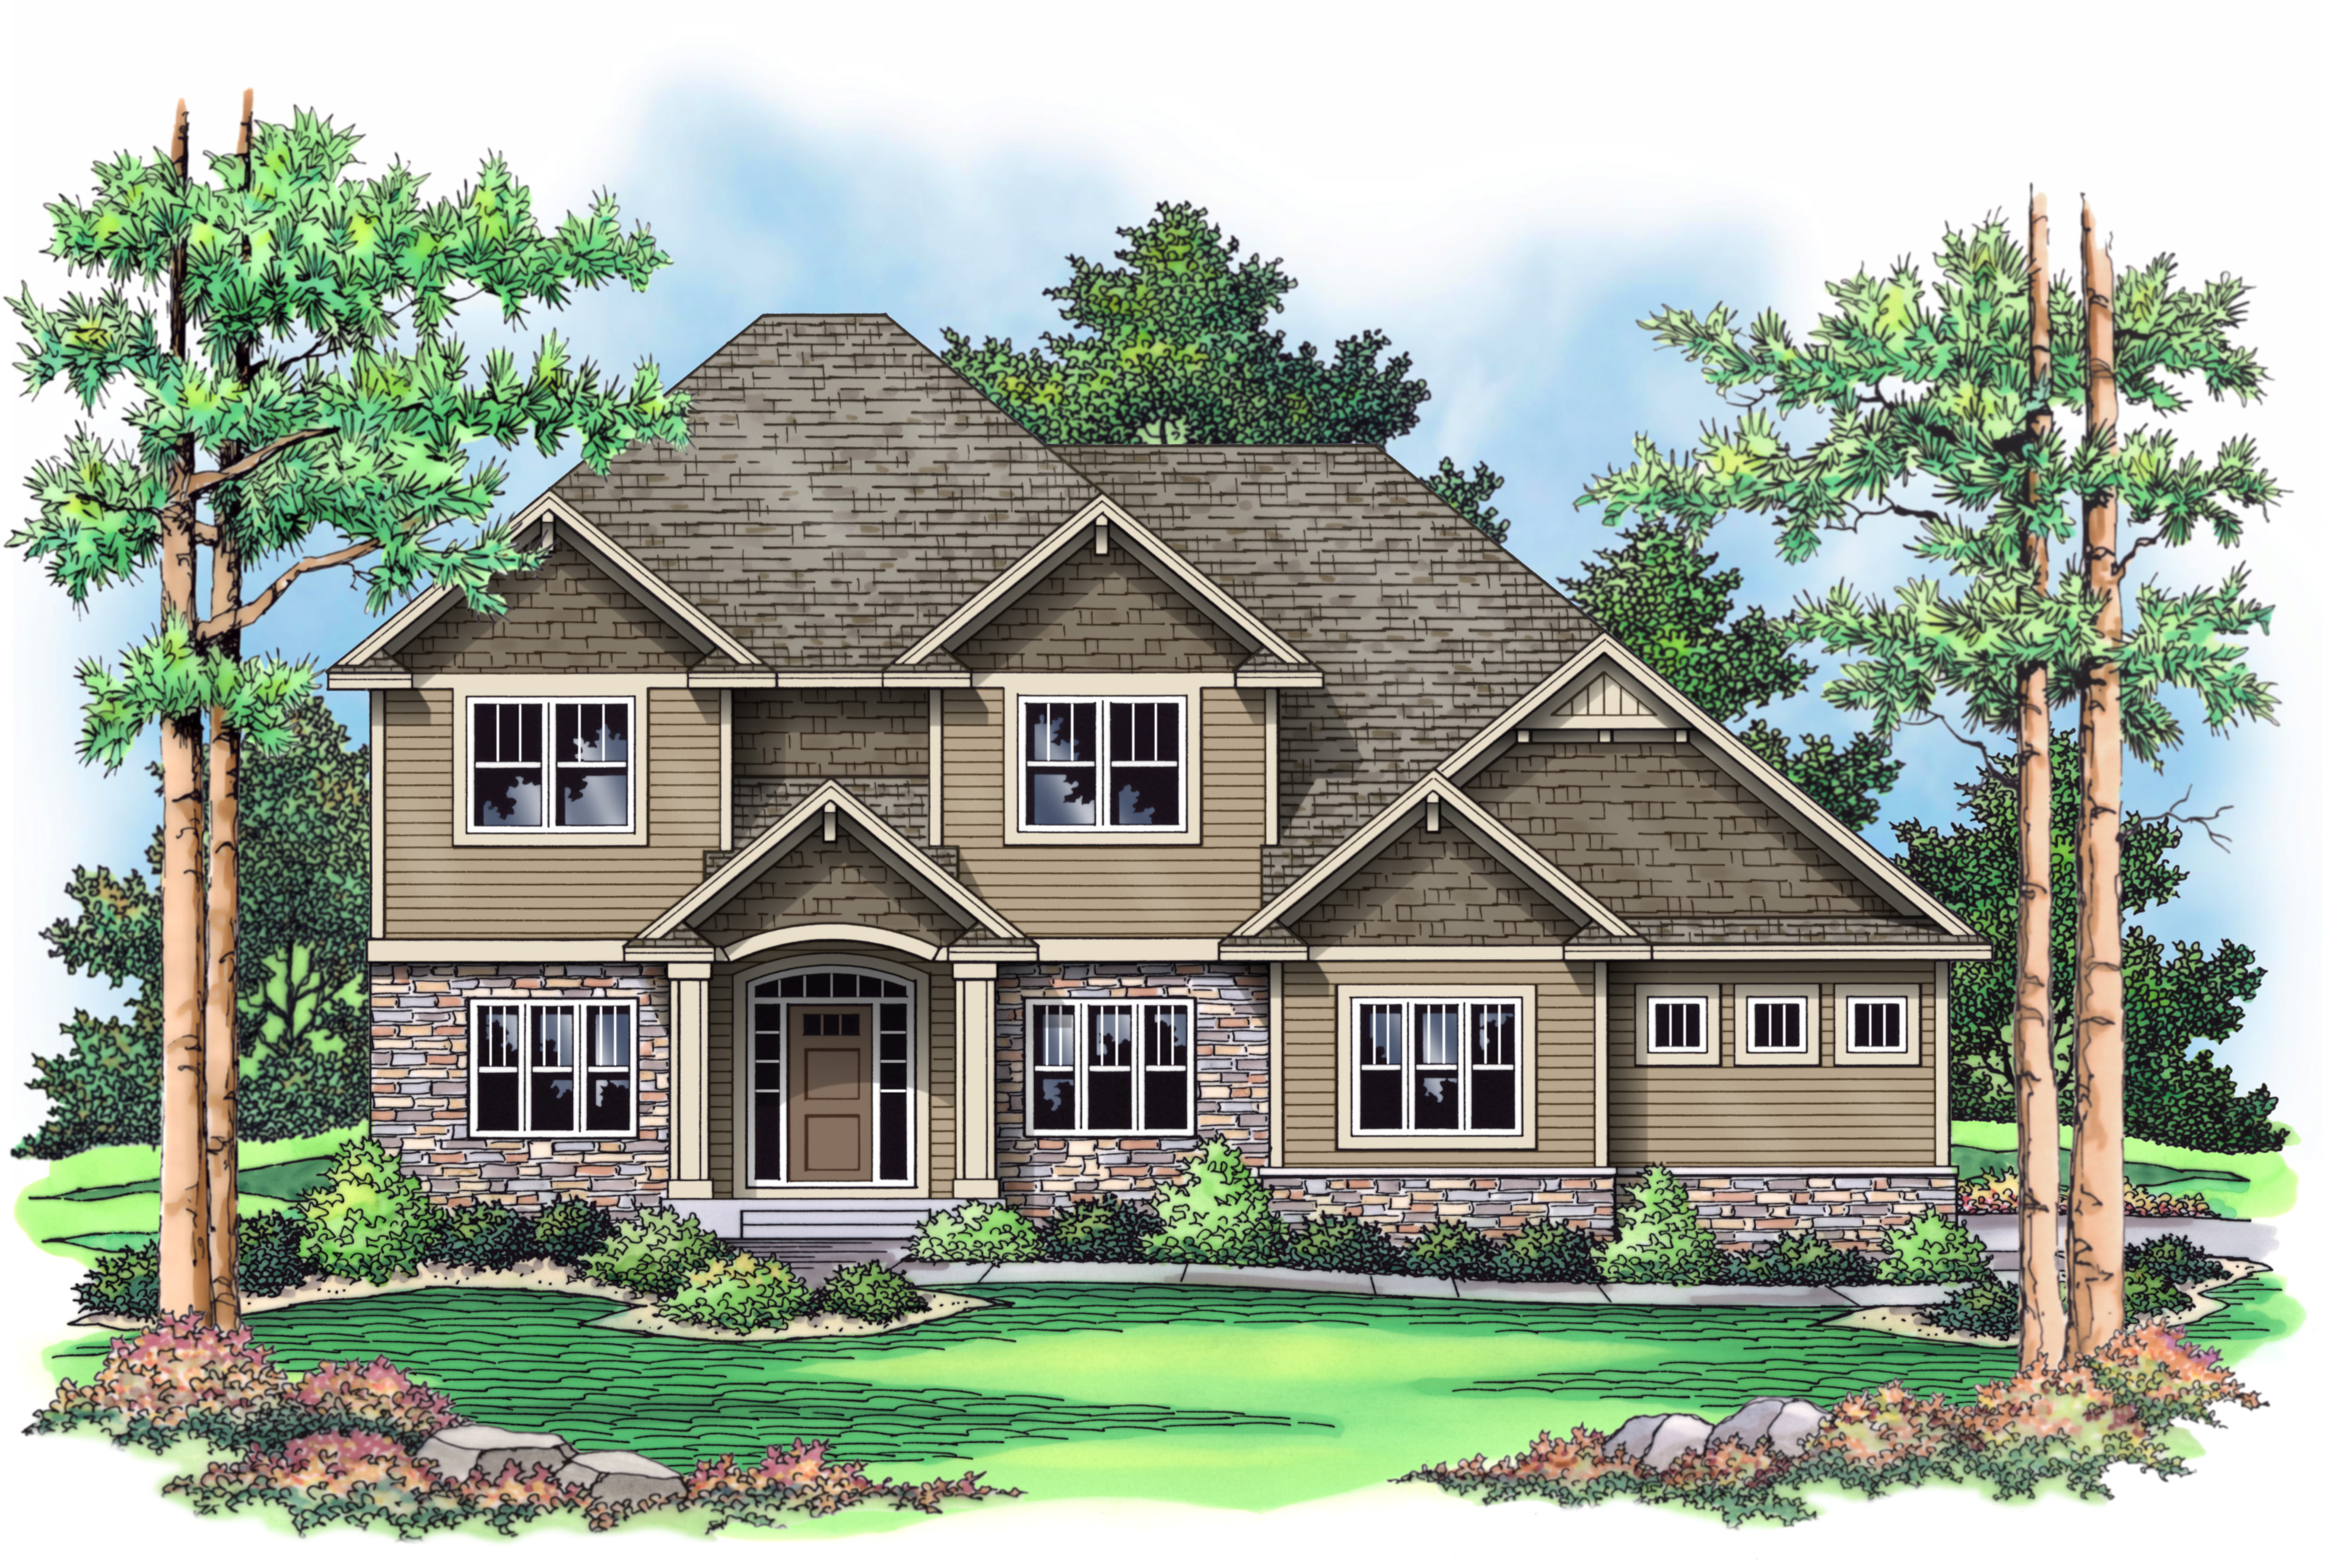 New home for sale in terra vista of plymouth mn under for Modern homes for sale mn